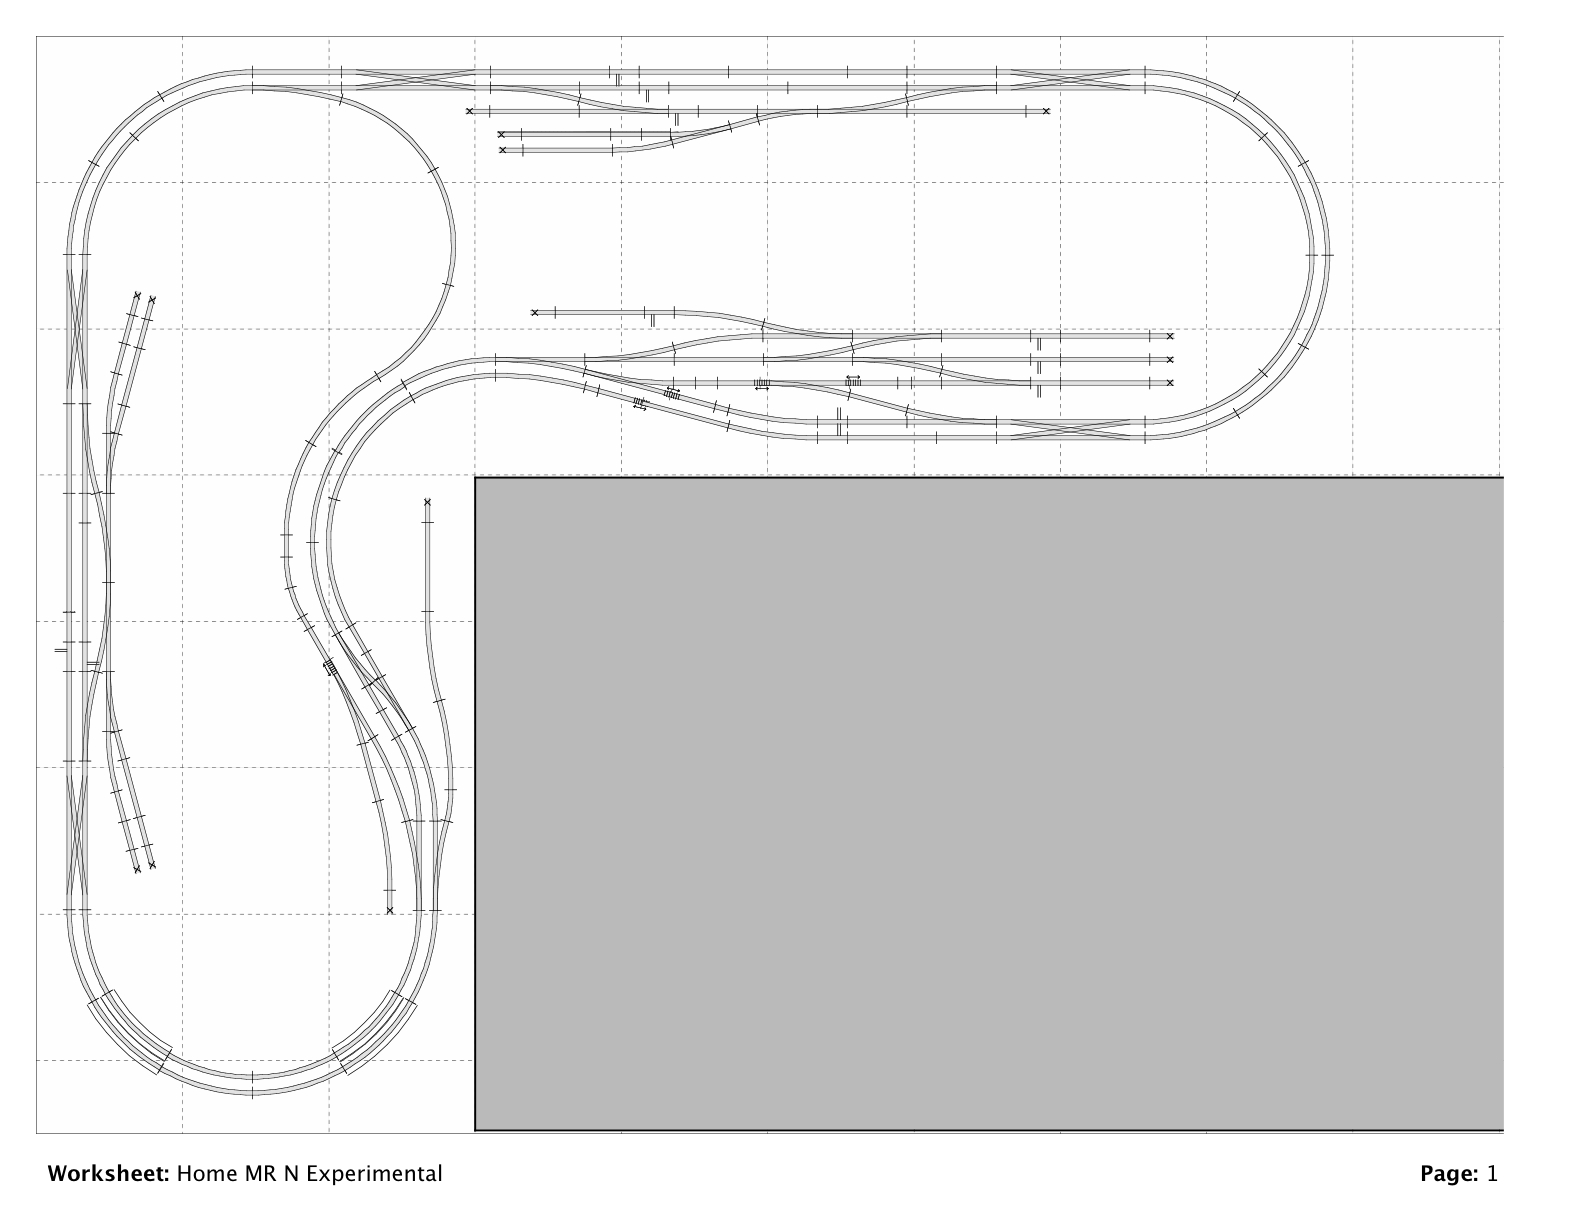 hight resolution of michigan train shoows 2013 plans model railroad dcc wiring